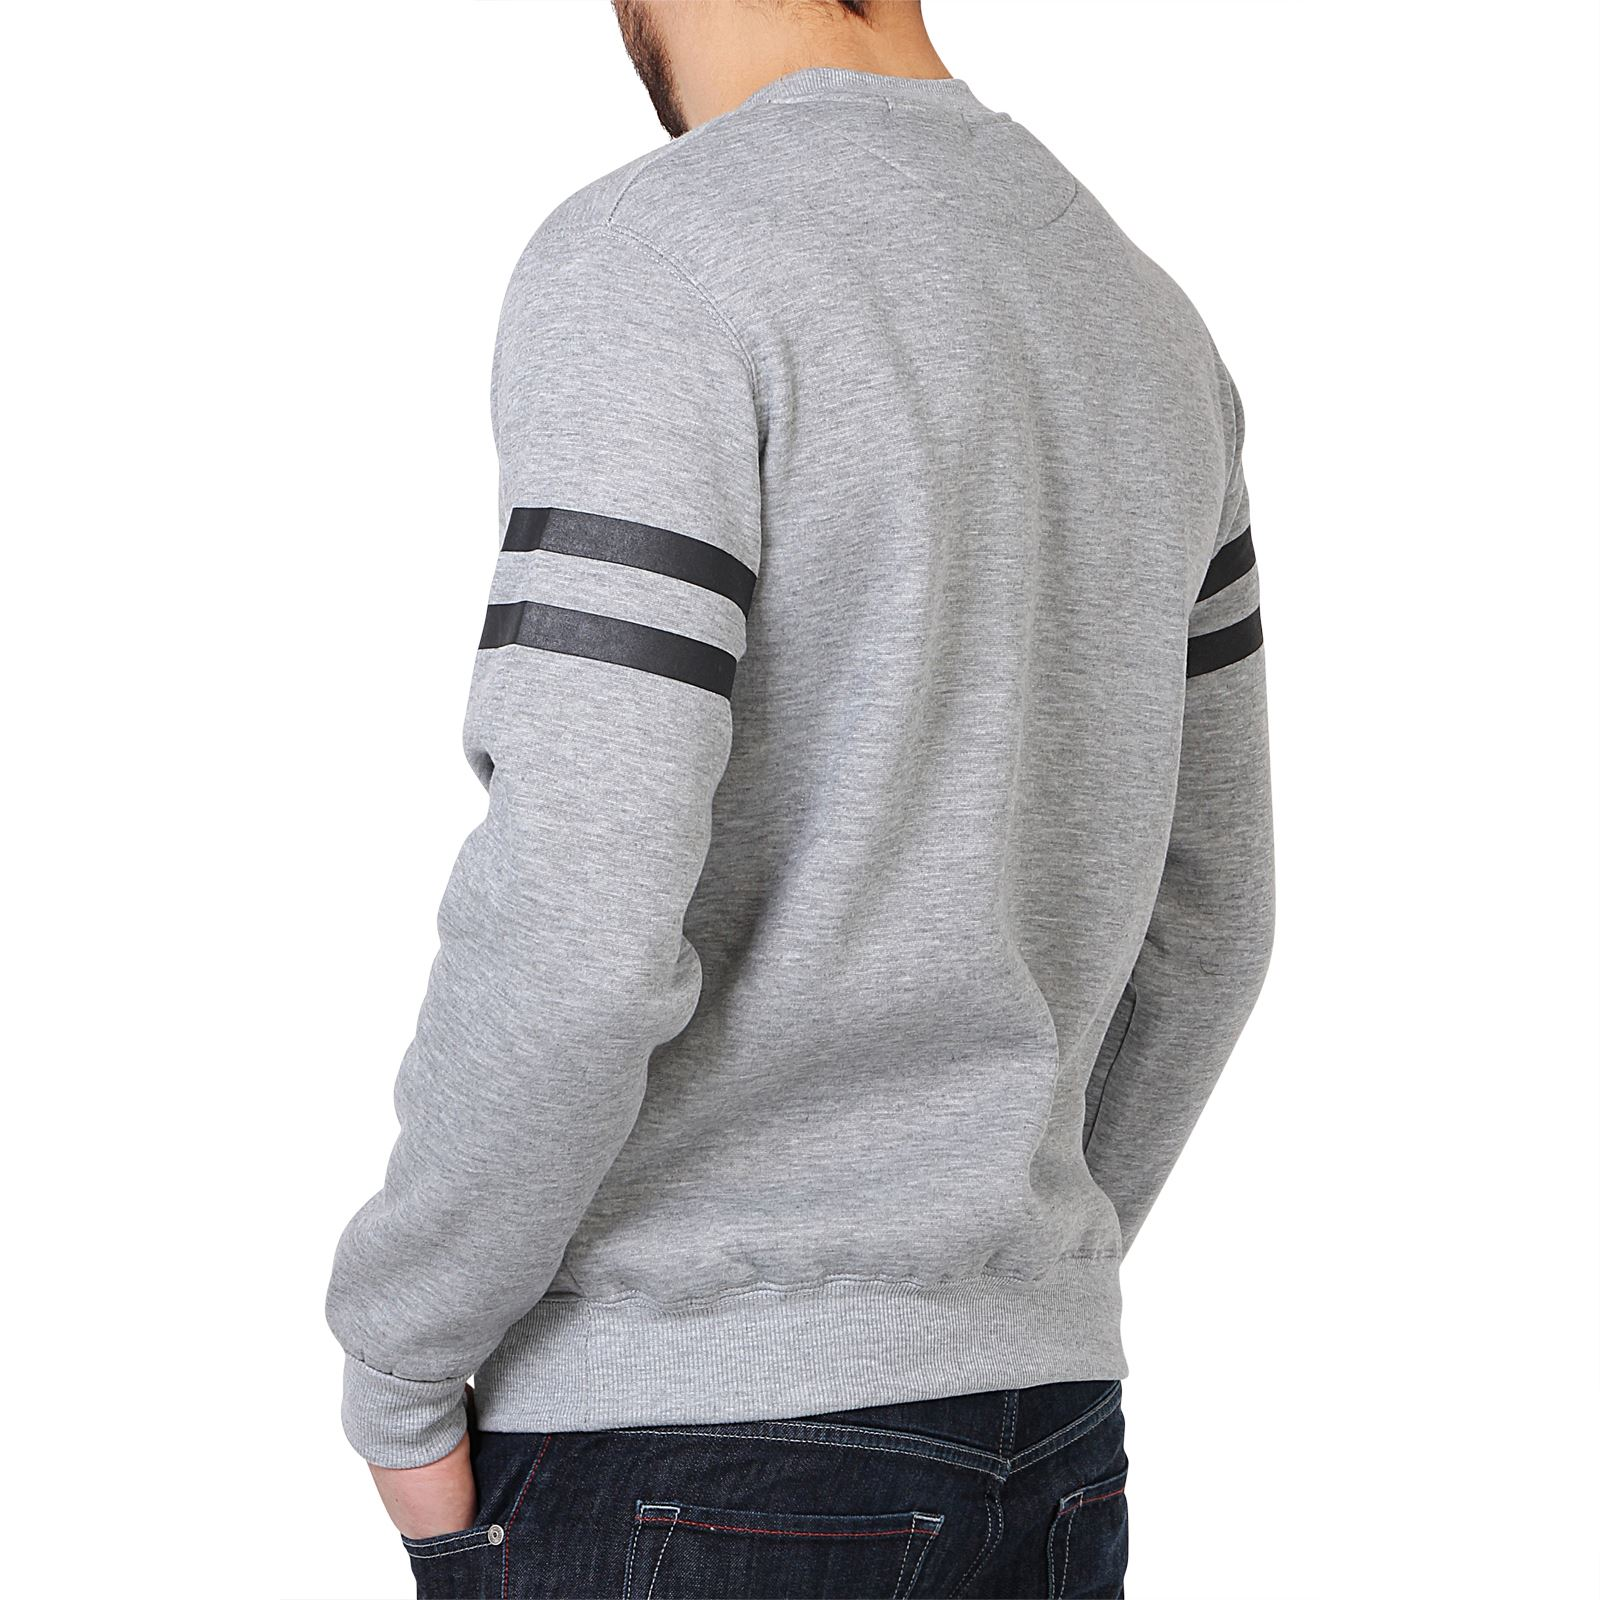 homme sweat shirt pull polaire casual imprim sportif. Black Bedroom Furniture Sets. Home Design Ideas